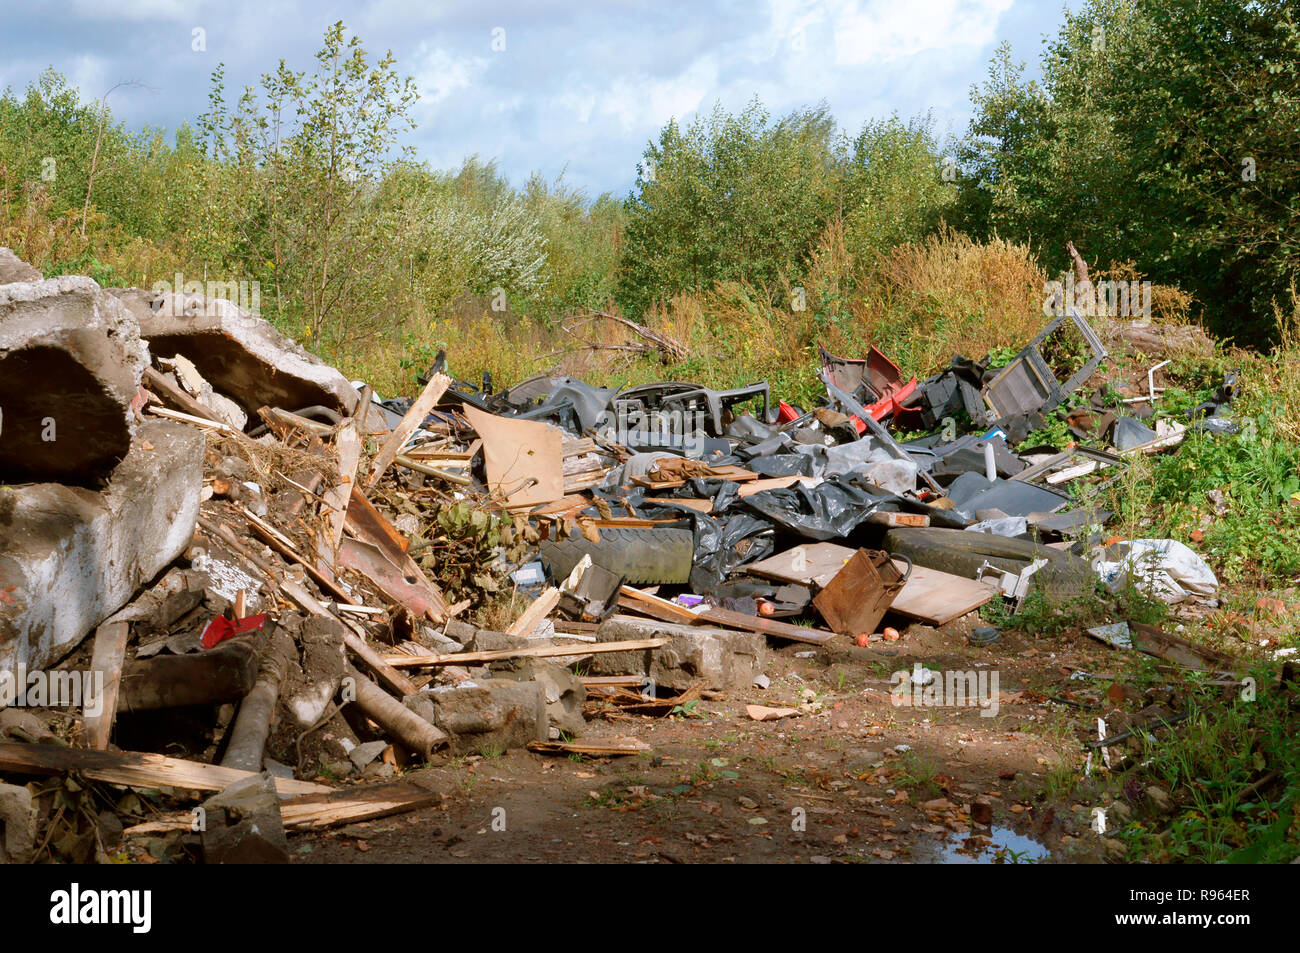 garbage heap in the forest, construction waste in the forest - Stock Image